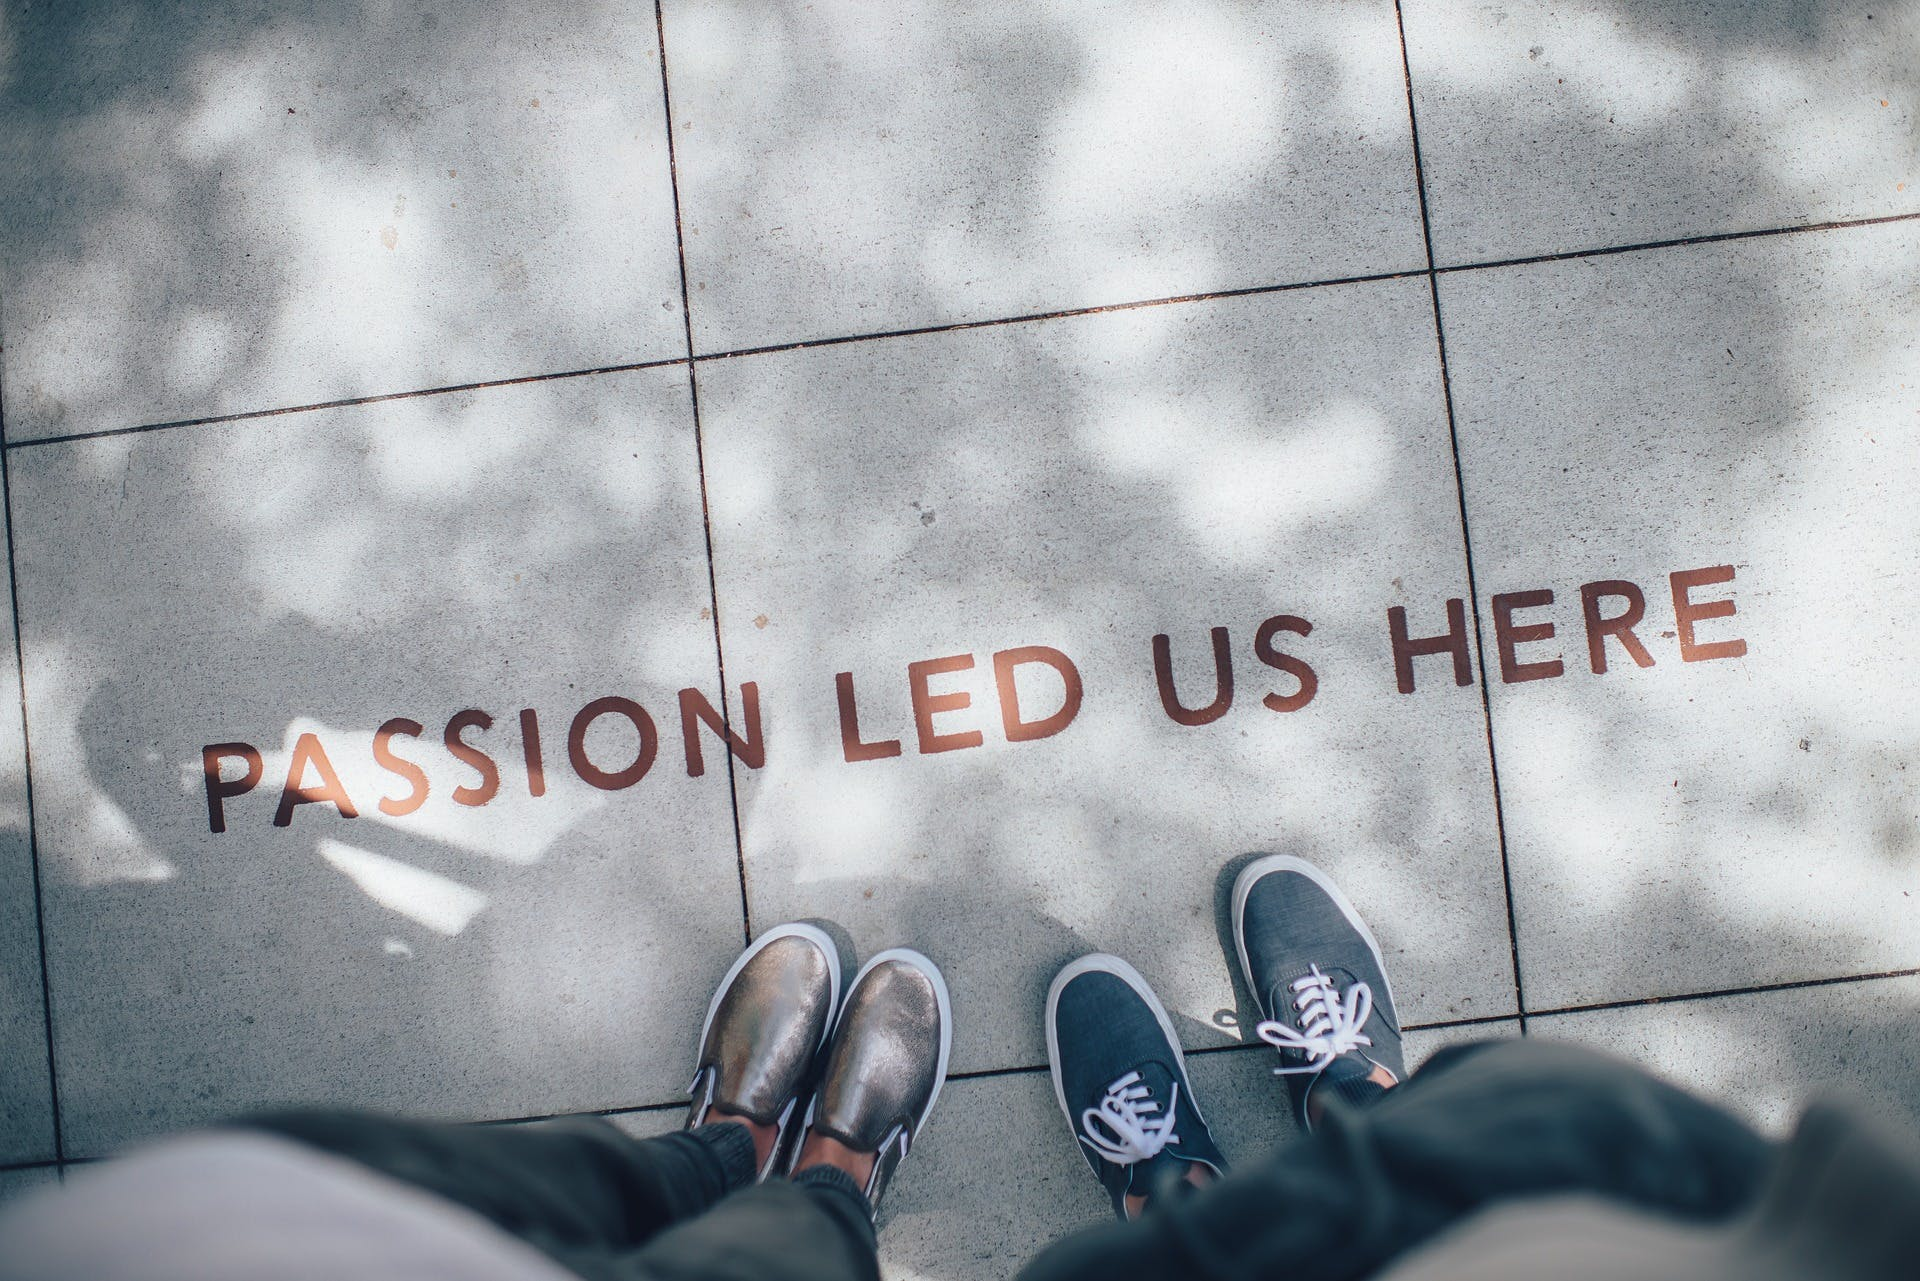 Two people standing on a road and in front of them there is a text on the road that says: 'Passion led us here'